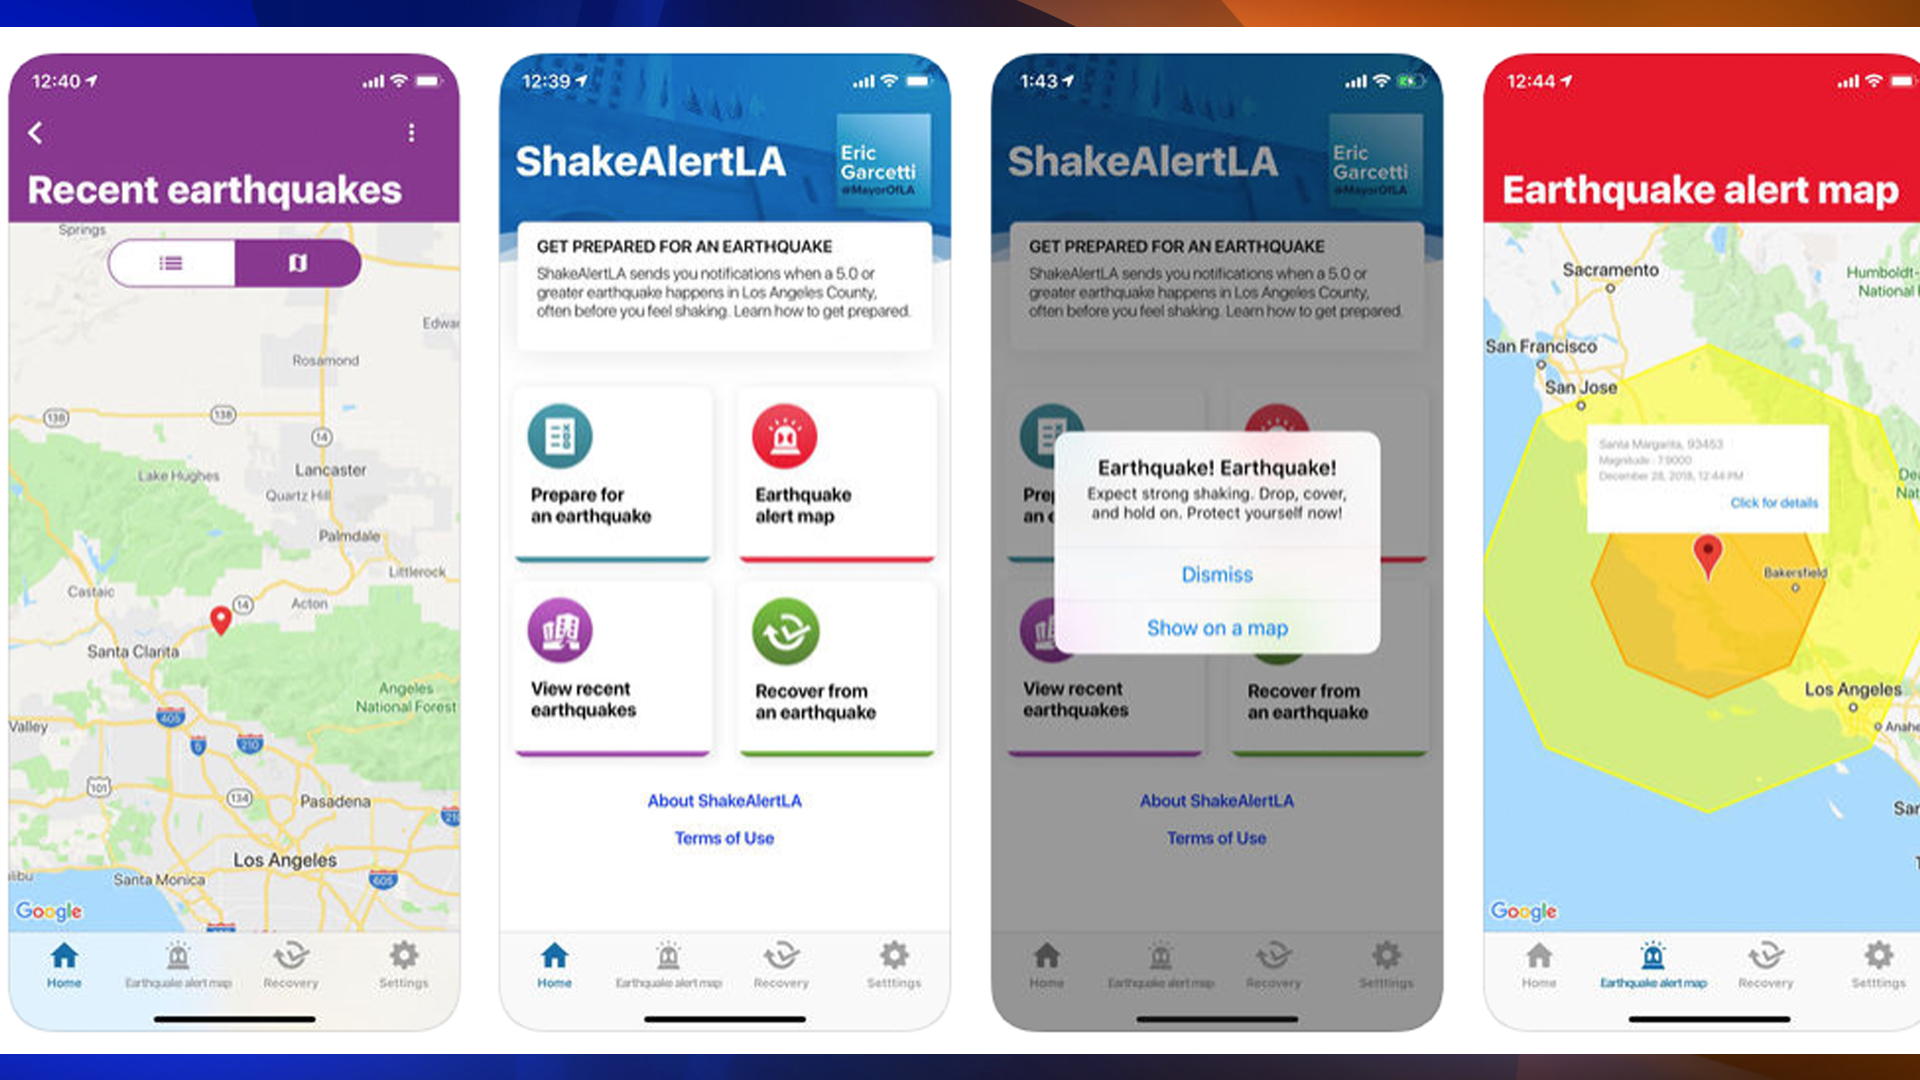 Interfaces of ShakeAlertLA app are seen in a screenshot taken from the Apple's App Store on Jan. 3, 2019.